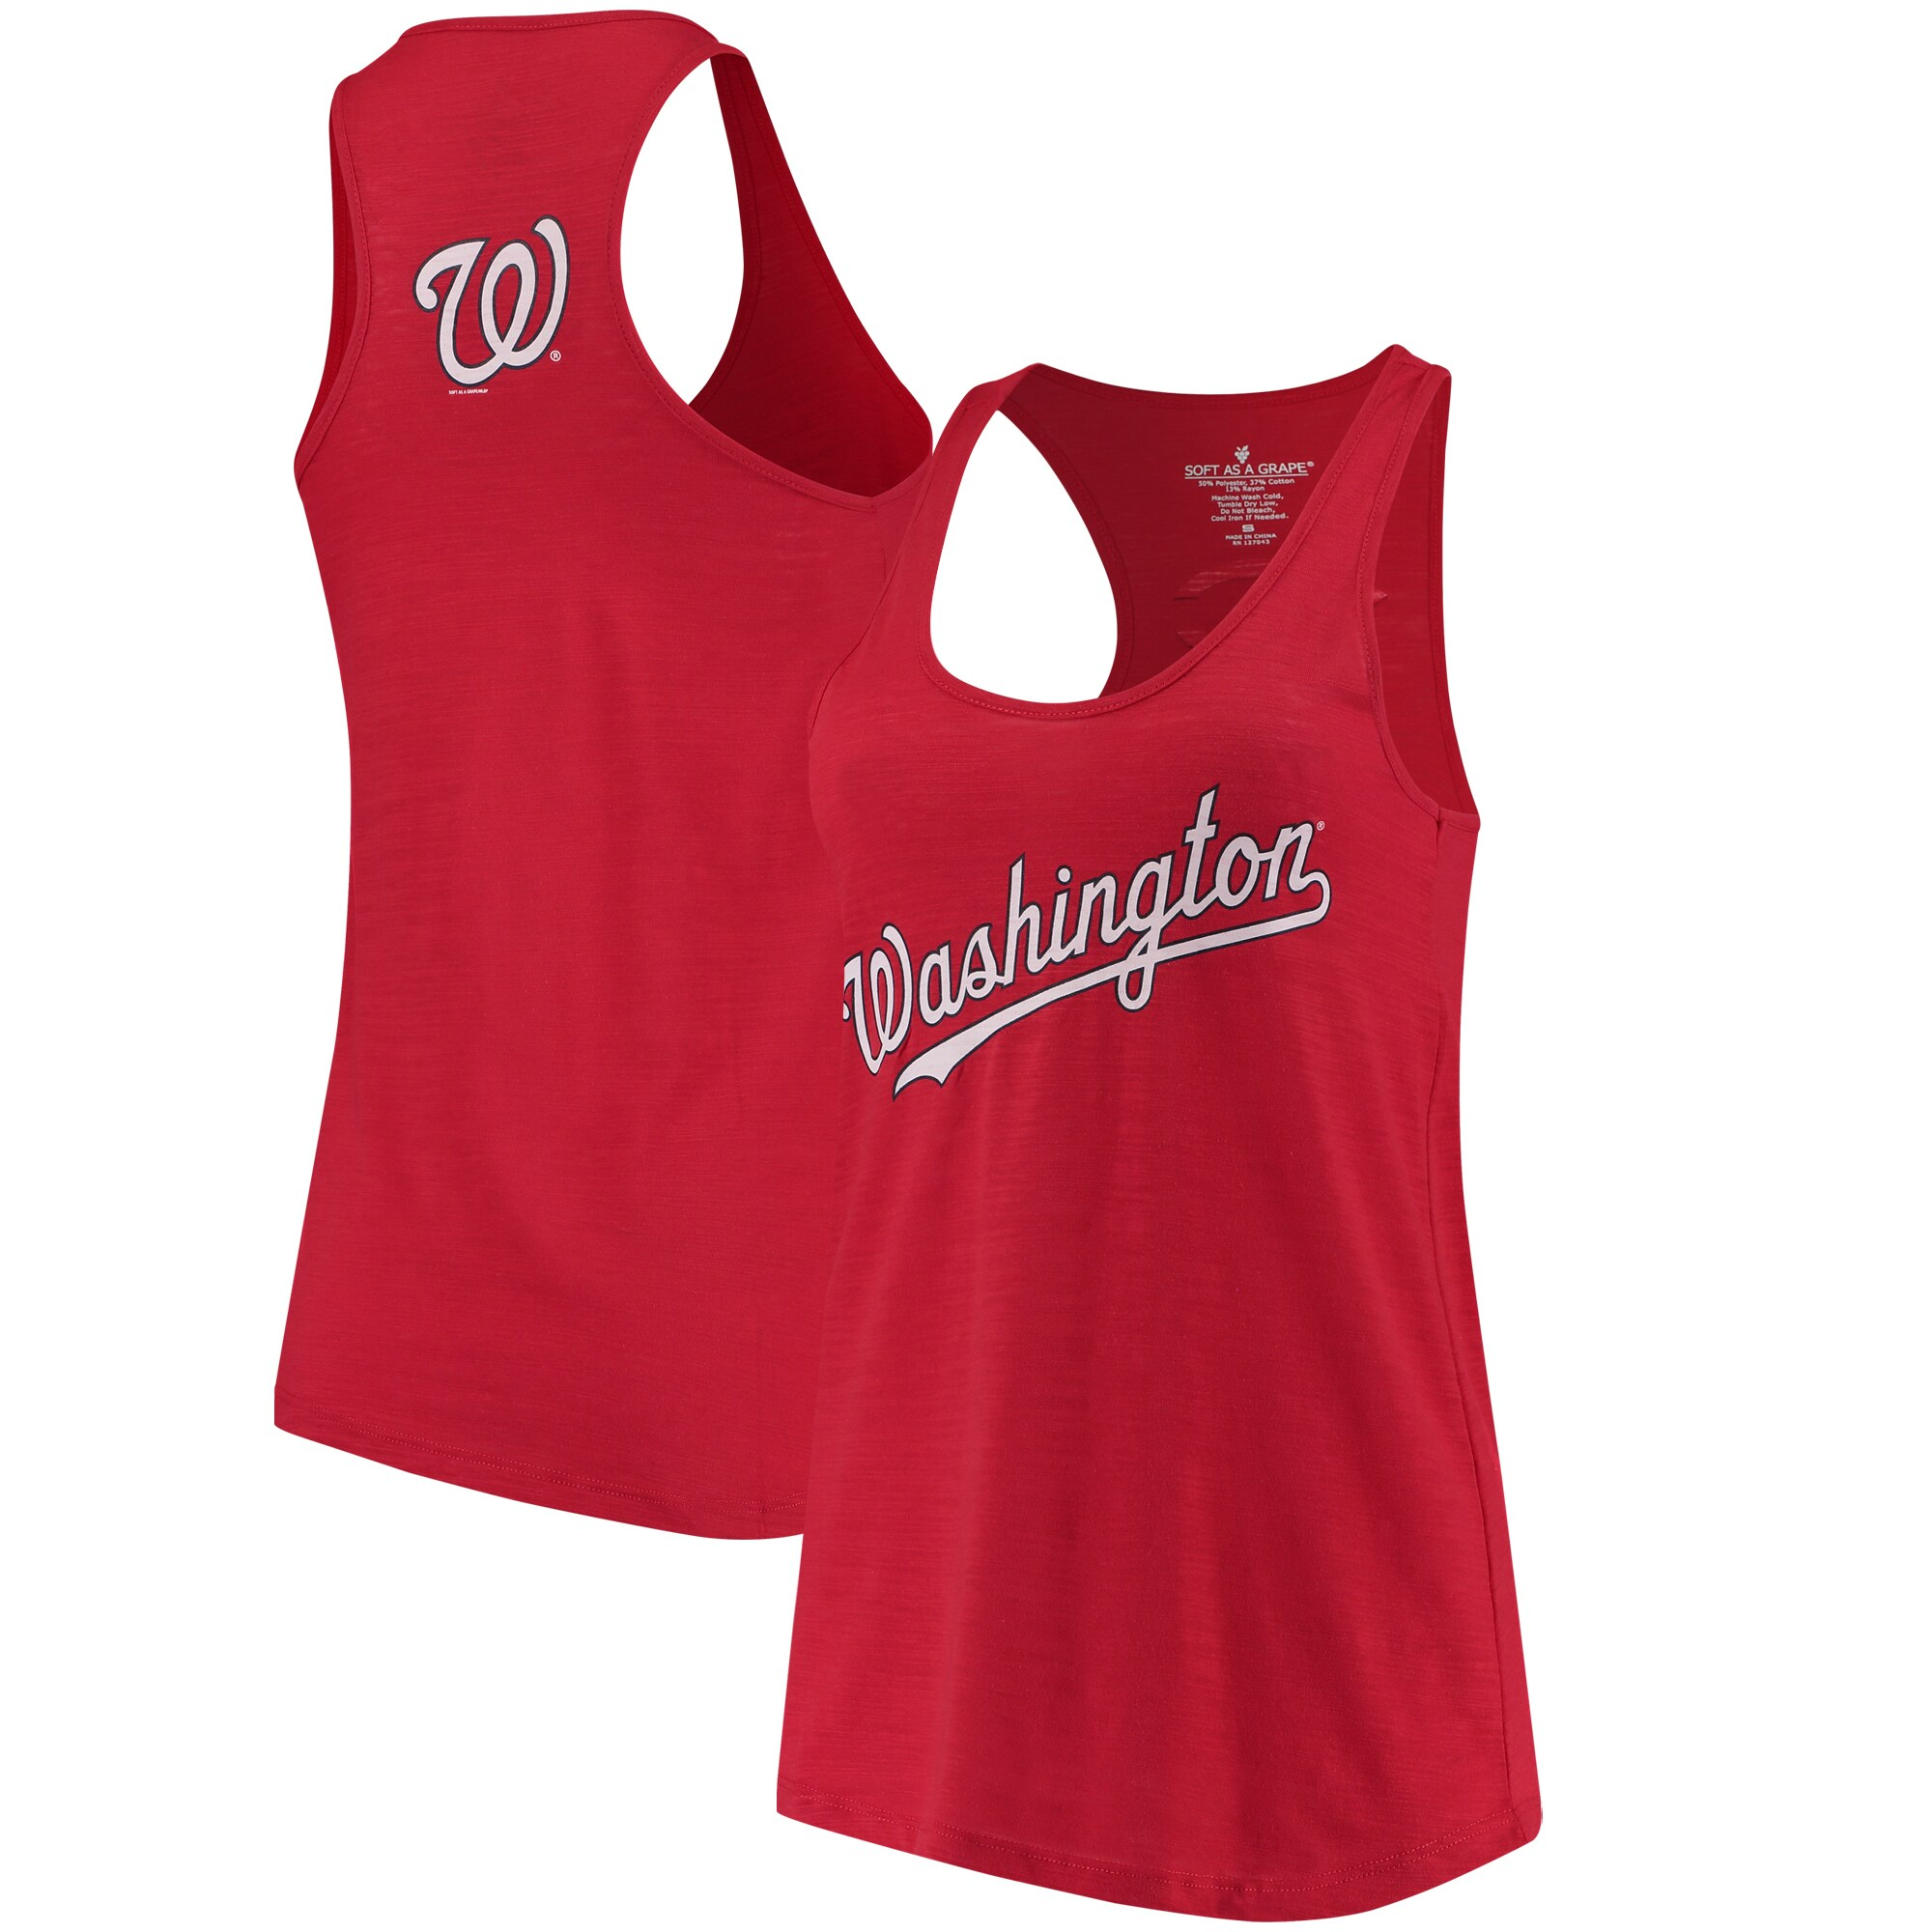 Washington Nationals Soft As A Grape Women's Front & Back Tri-Blend Racerback Tank Top - Red